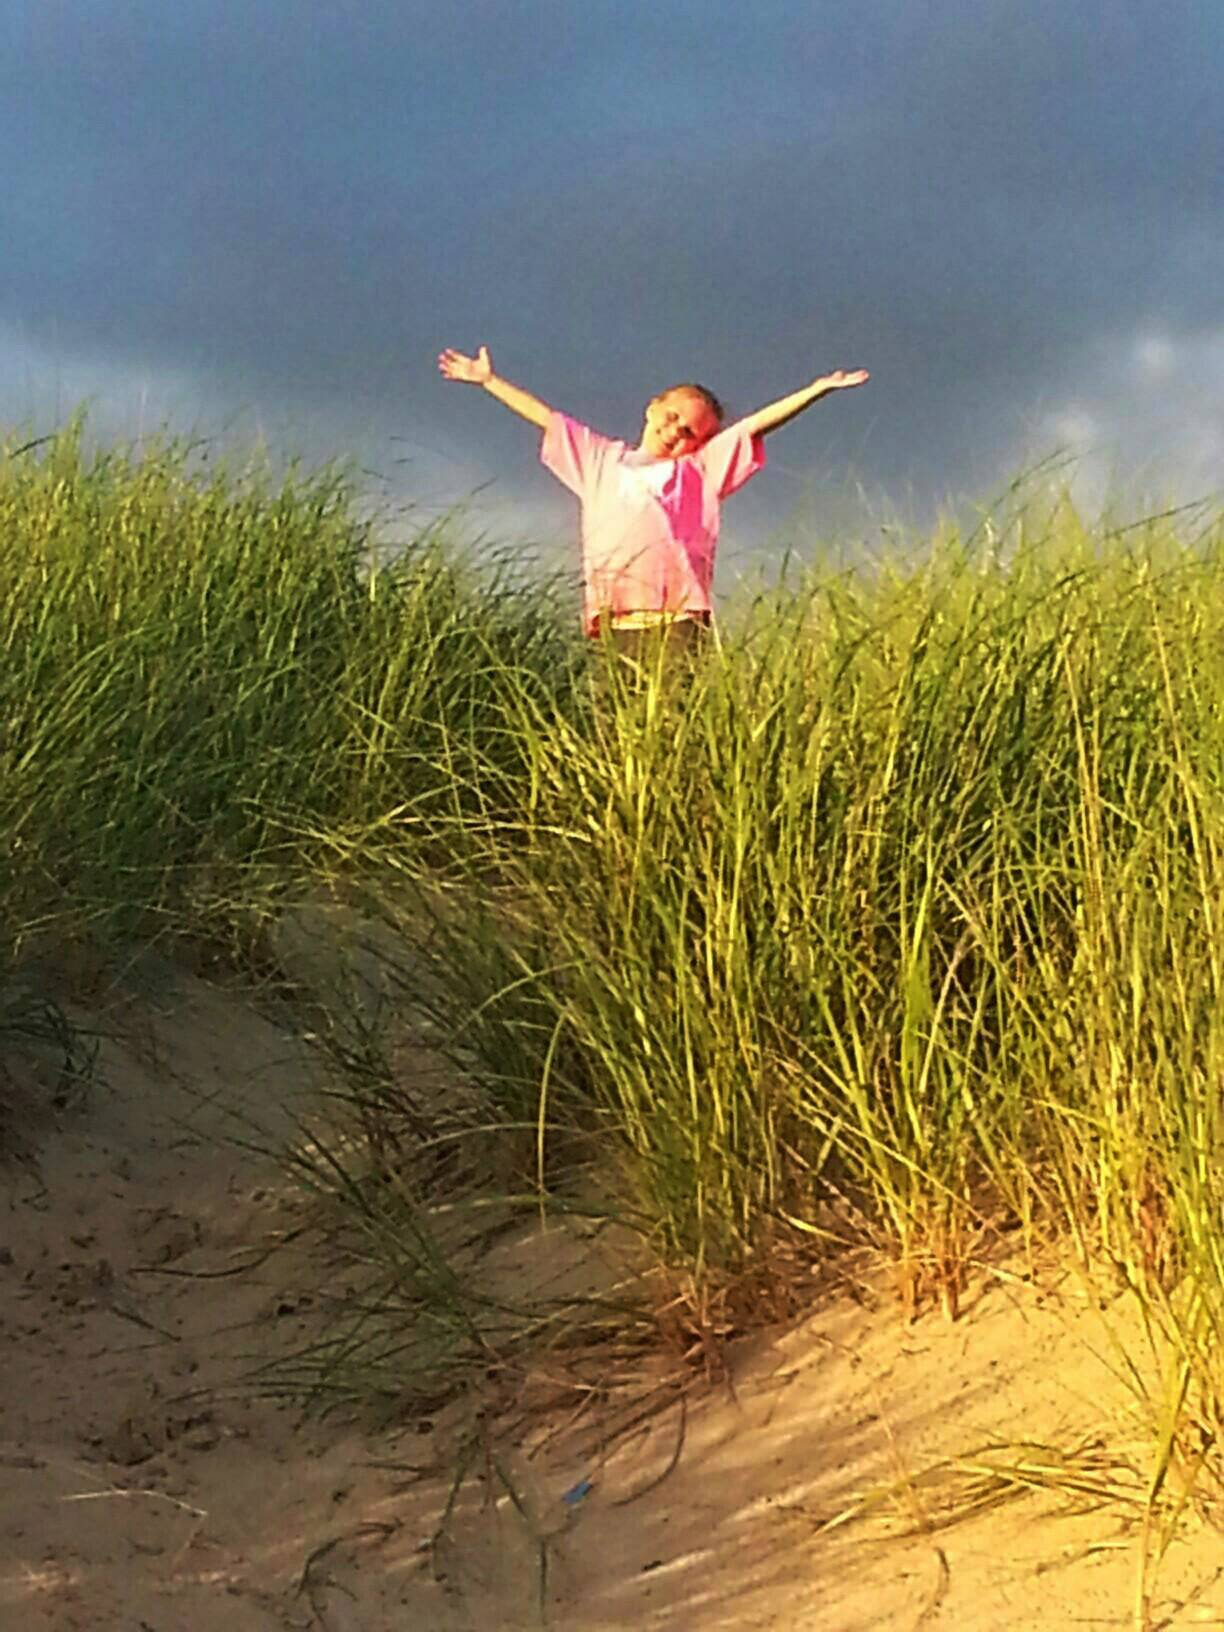 Gracie plays on the dunes earlier this month at New Buffalo Beach in Michigan.